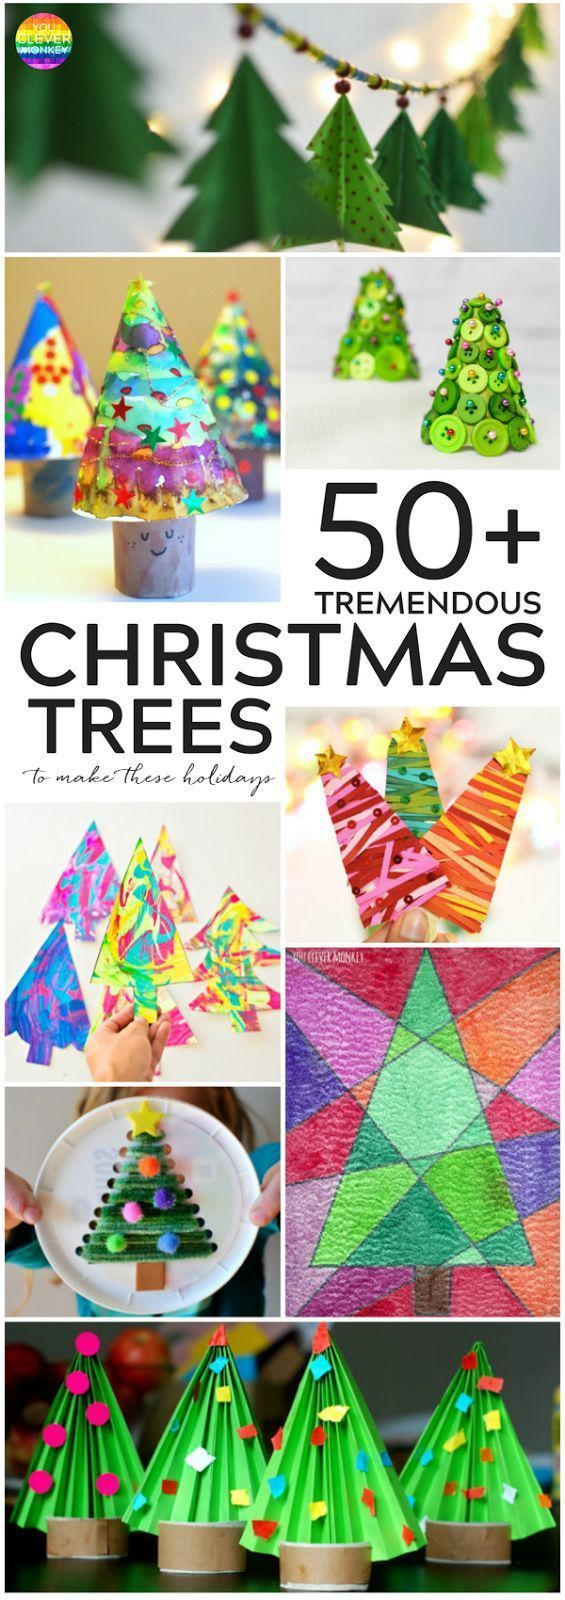 50 TREMENDOUS CHRISTMAS TREE CRAFTS ACTIVITIES